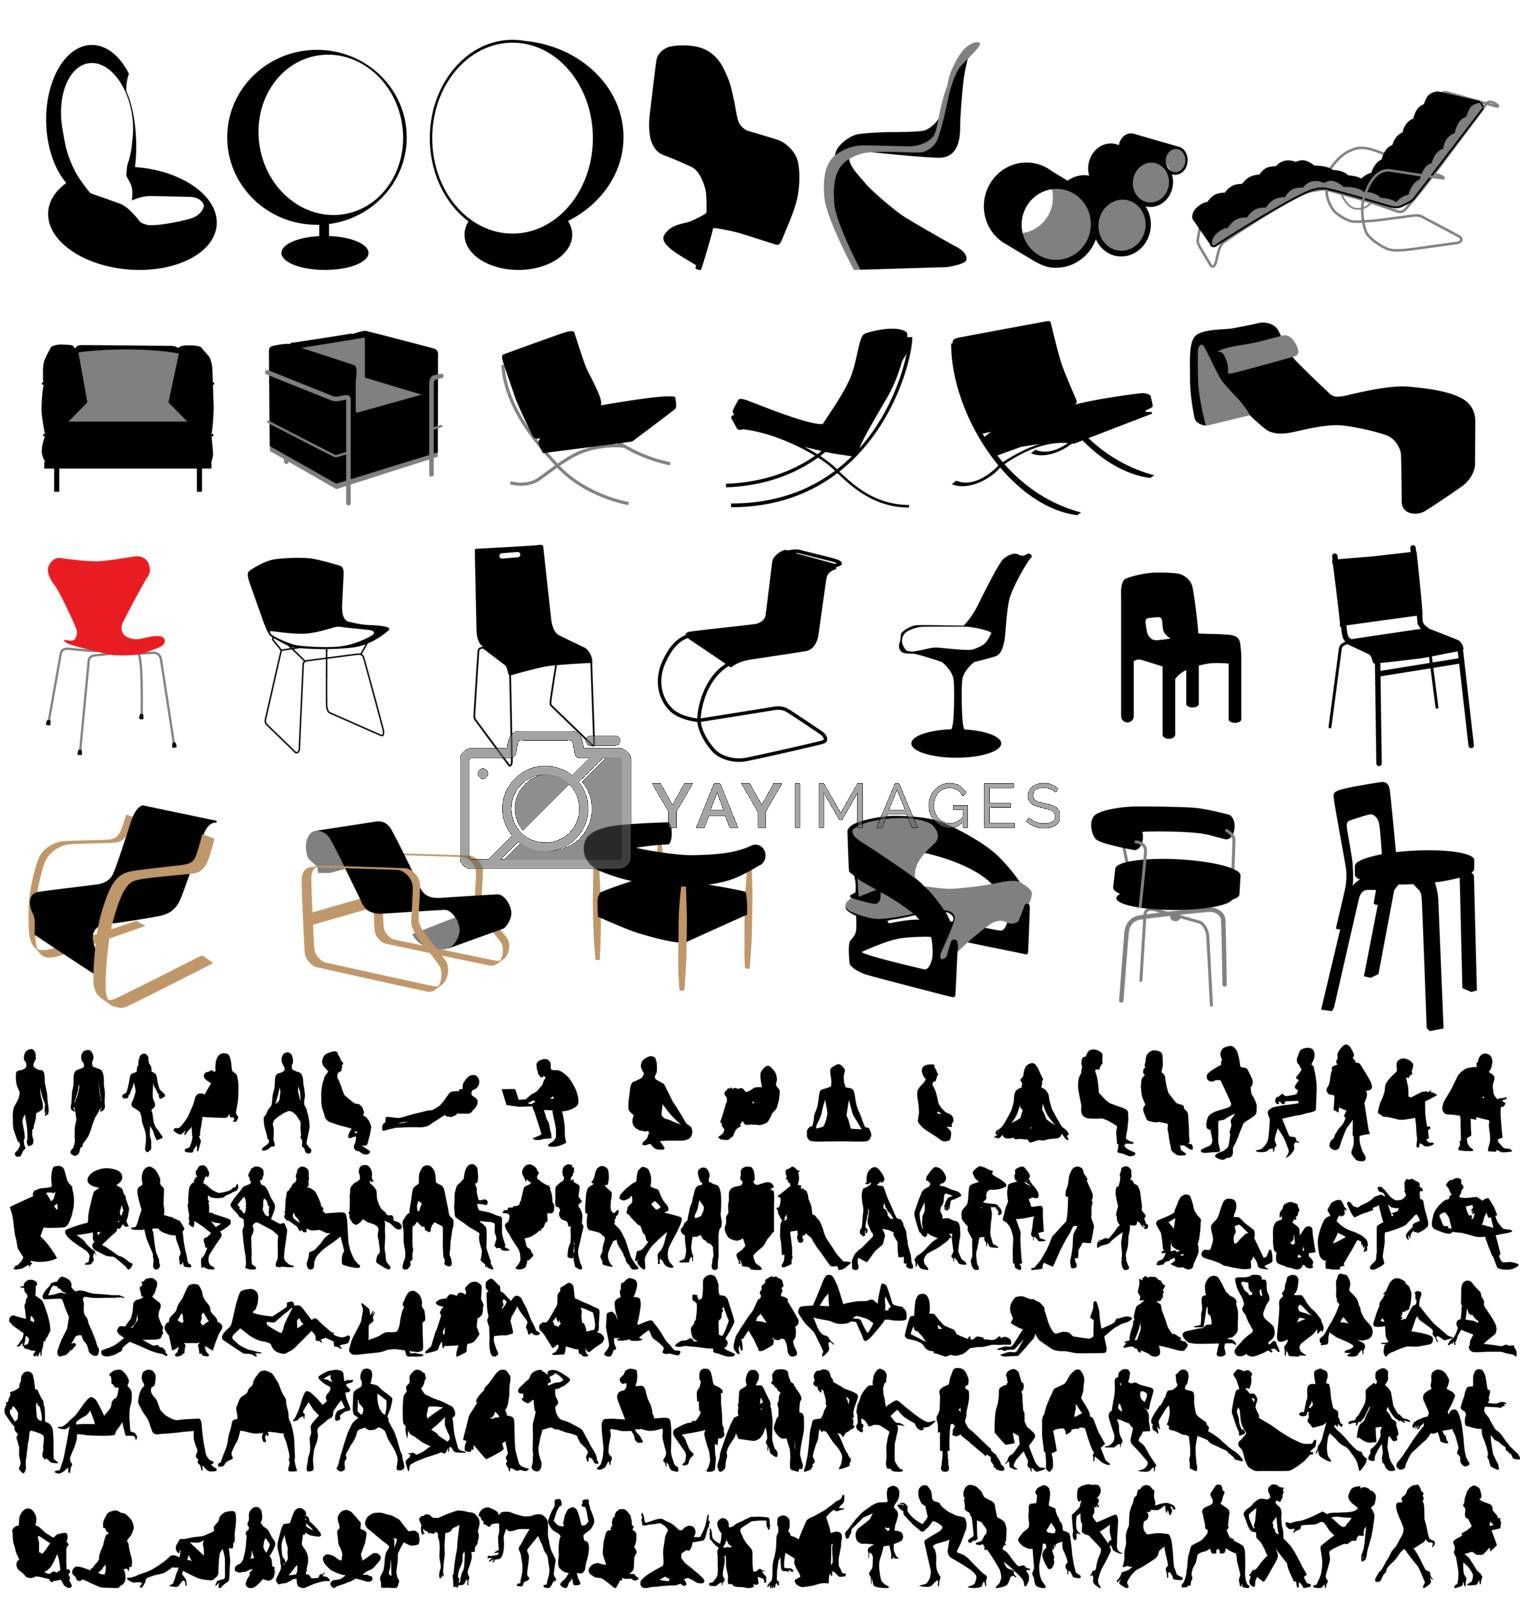 many designer chairs and sitting people